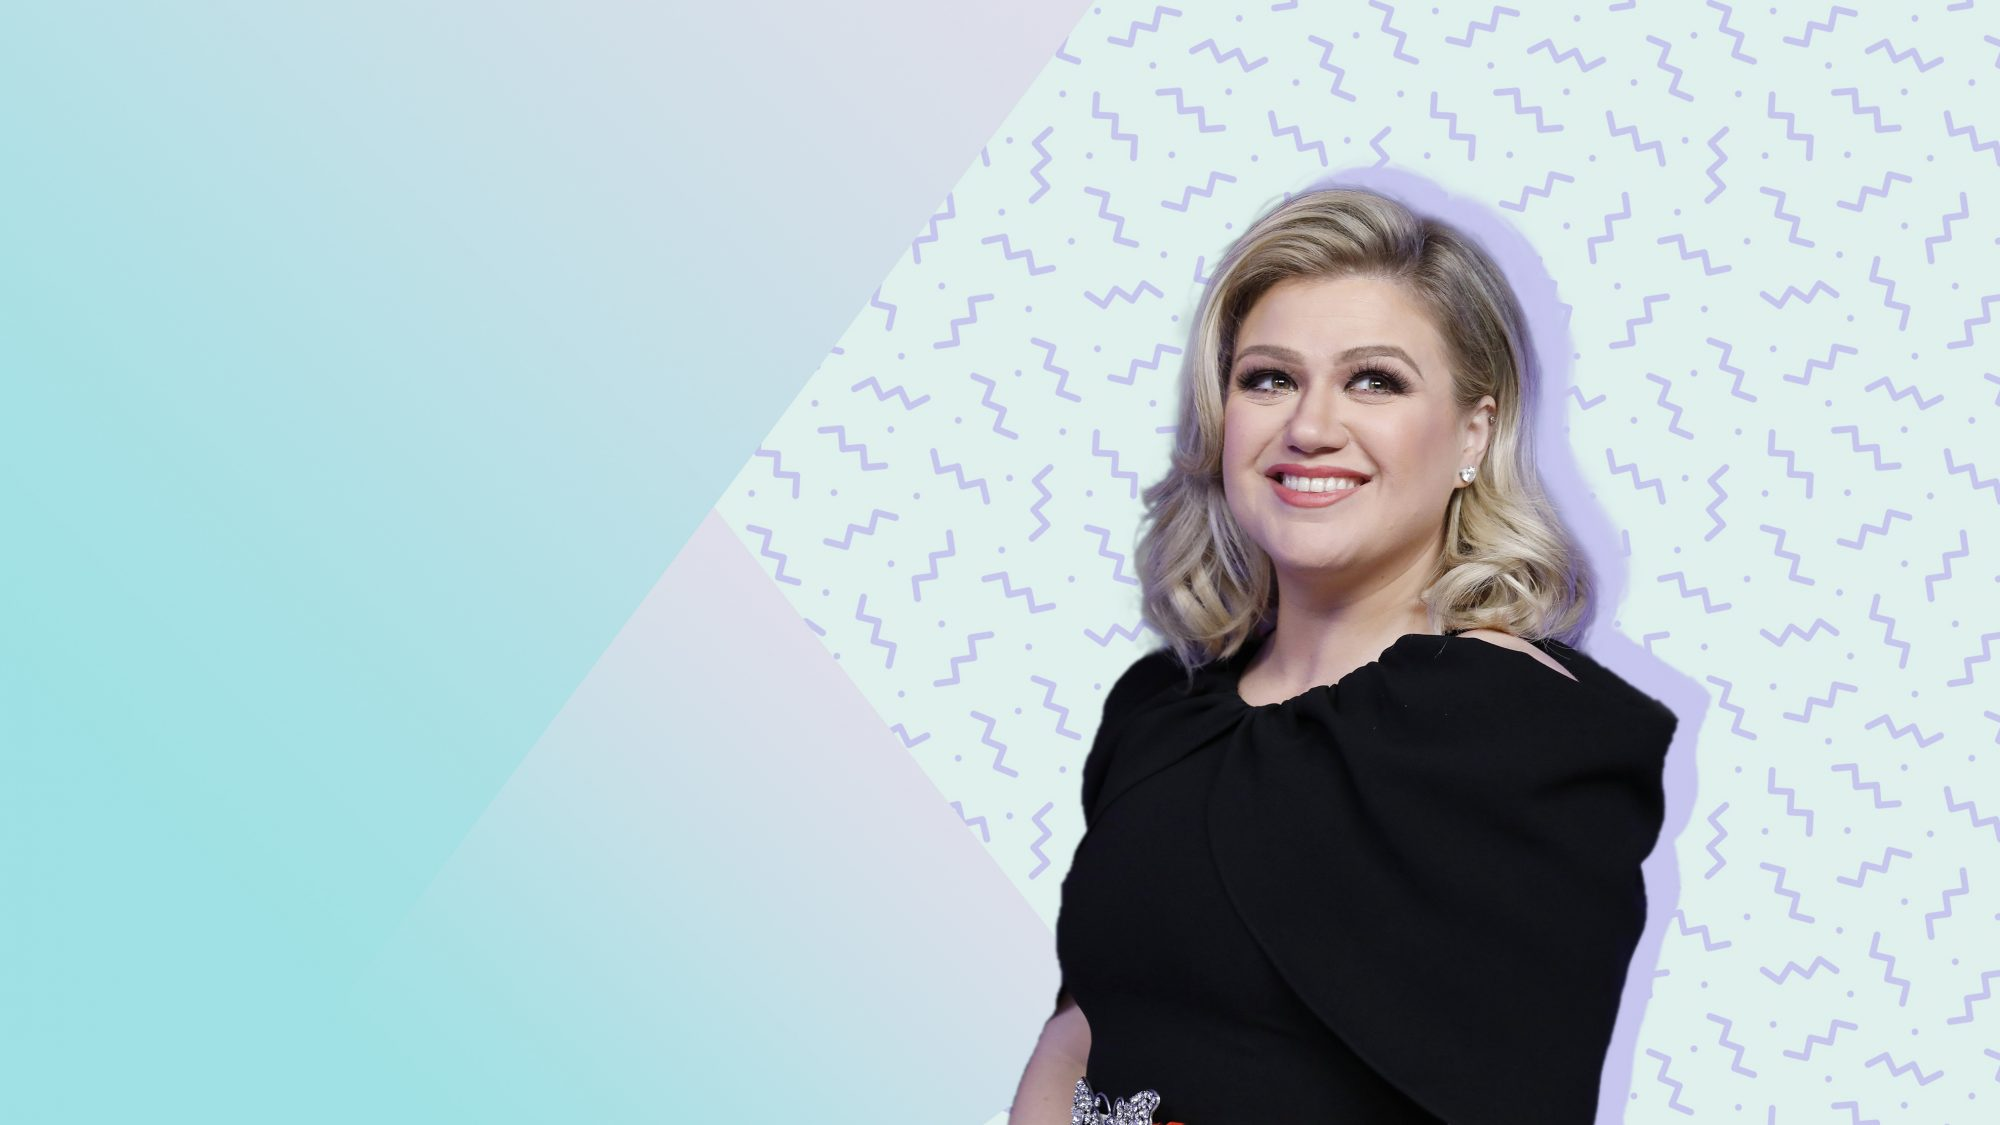 kelly-clarkson-ovarian-cyst-burst kelly-clarkson ovarian-cyst OBGYN woman health wellbeing ovary